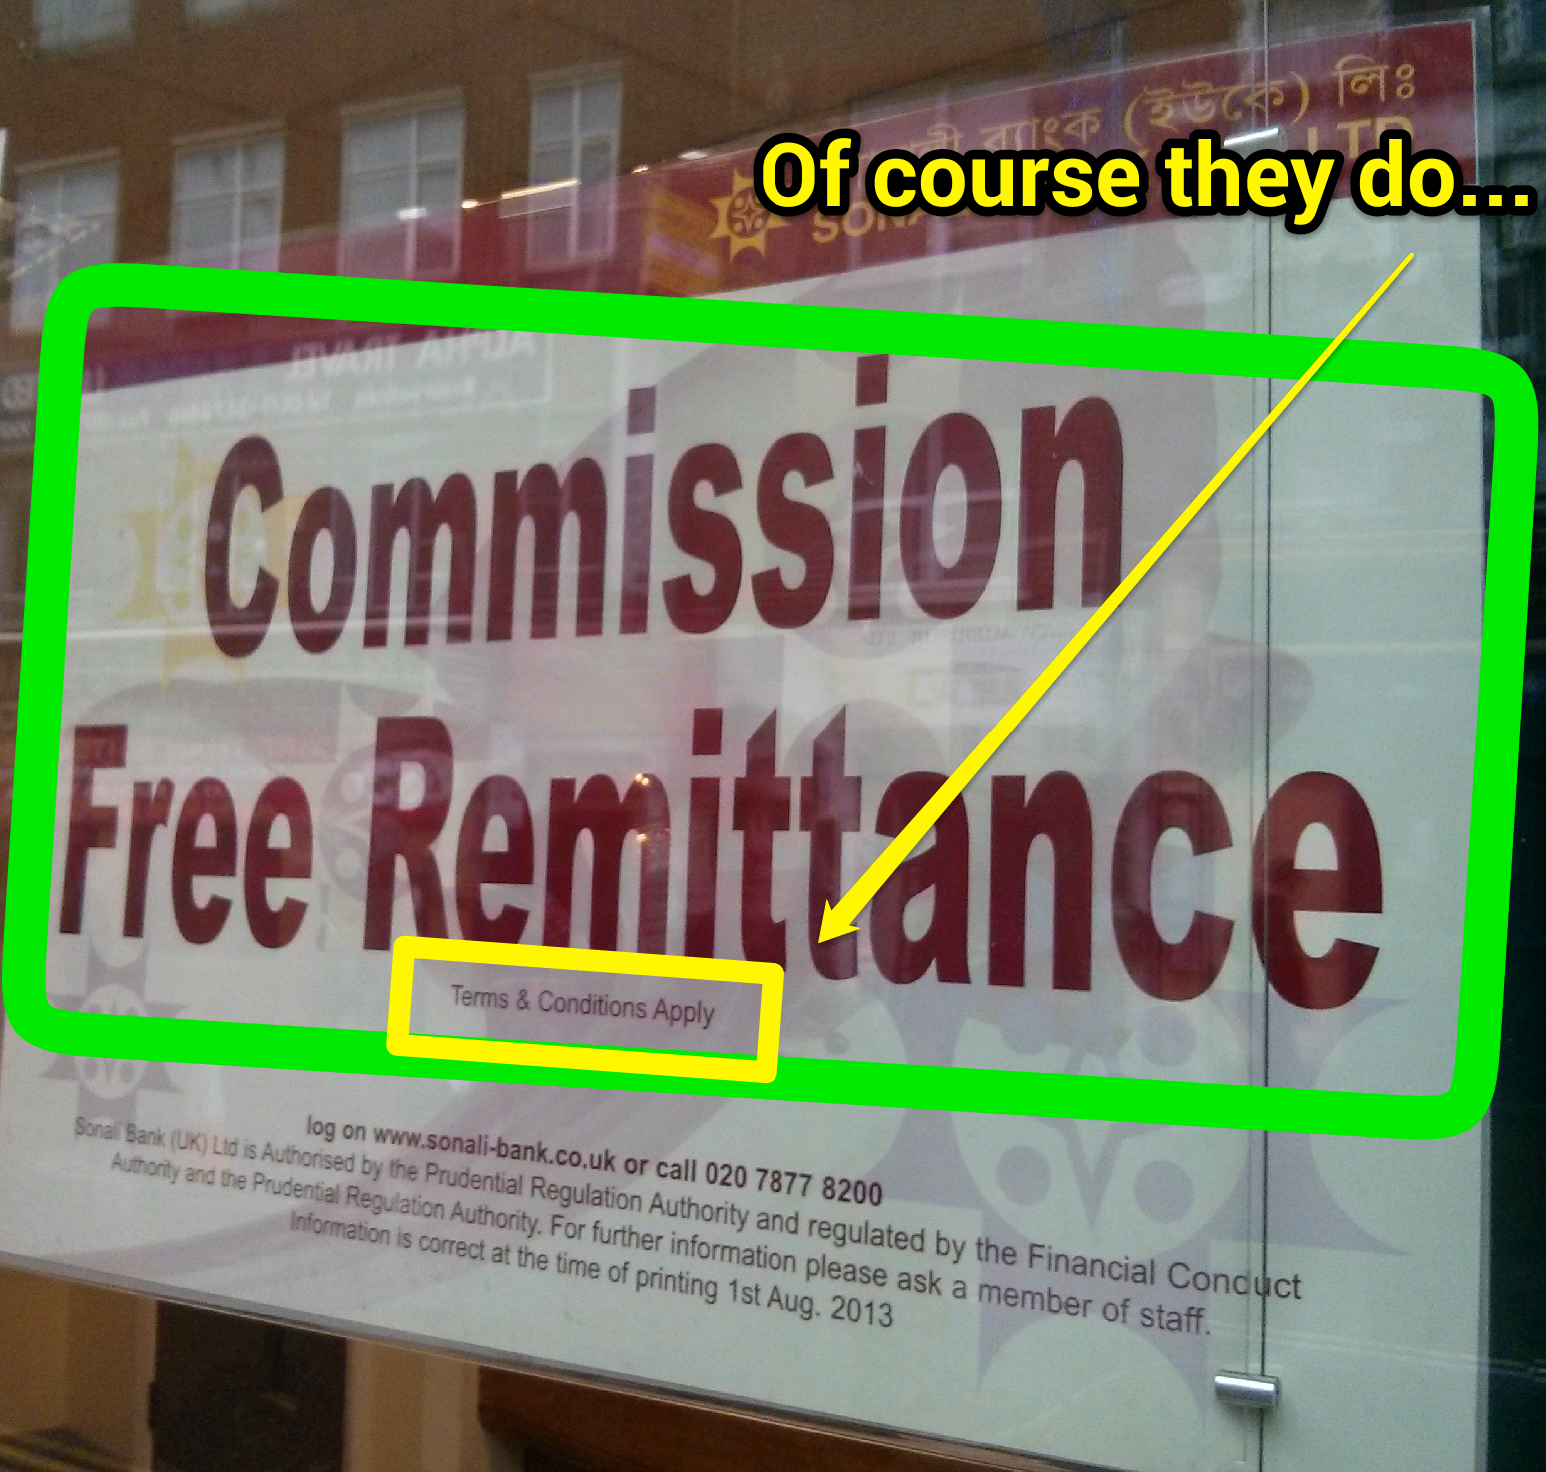 This Company Is Advertising Commission Free Remittances But Watch Out Terms And Conditions Ly